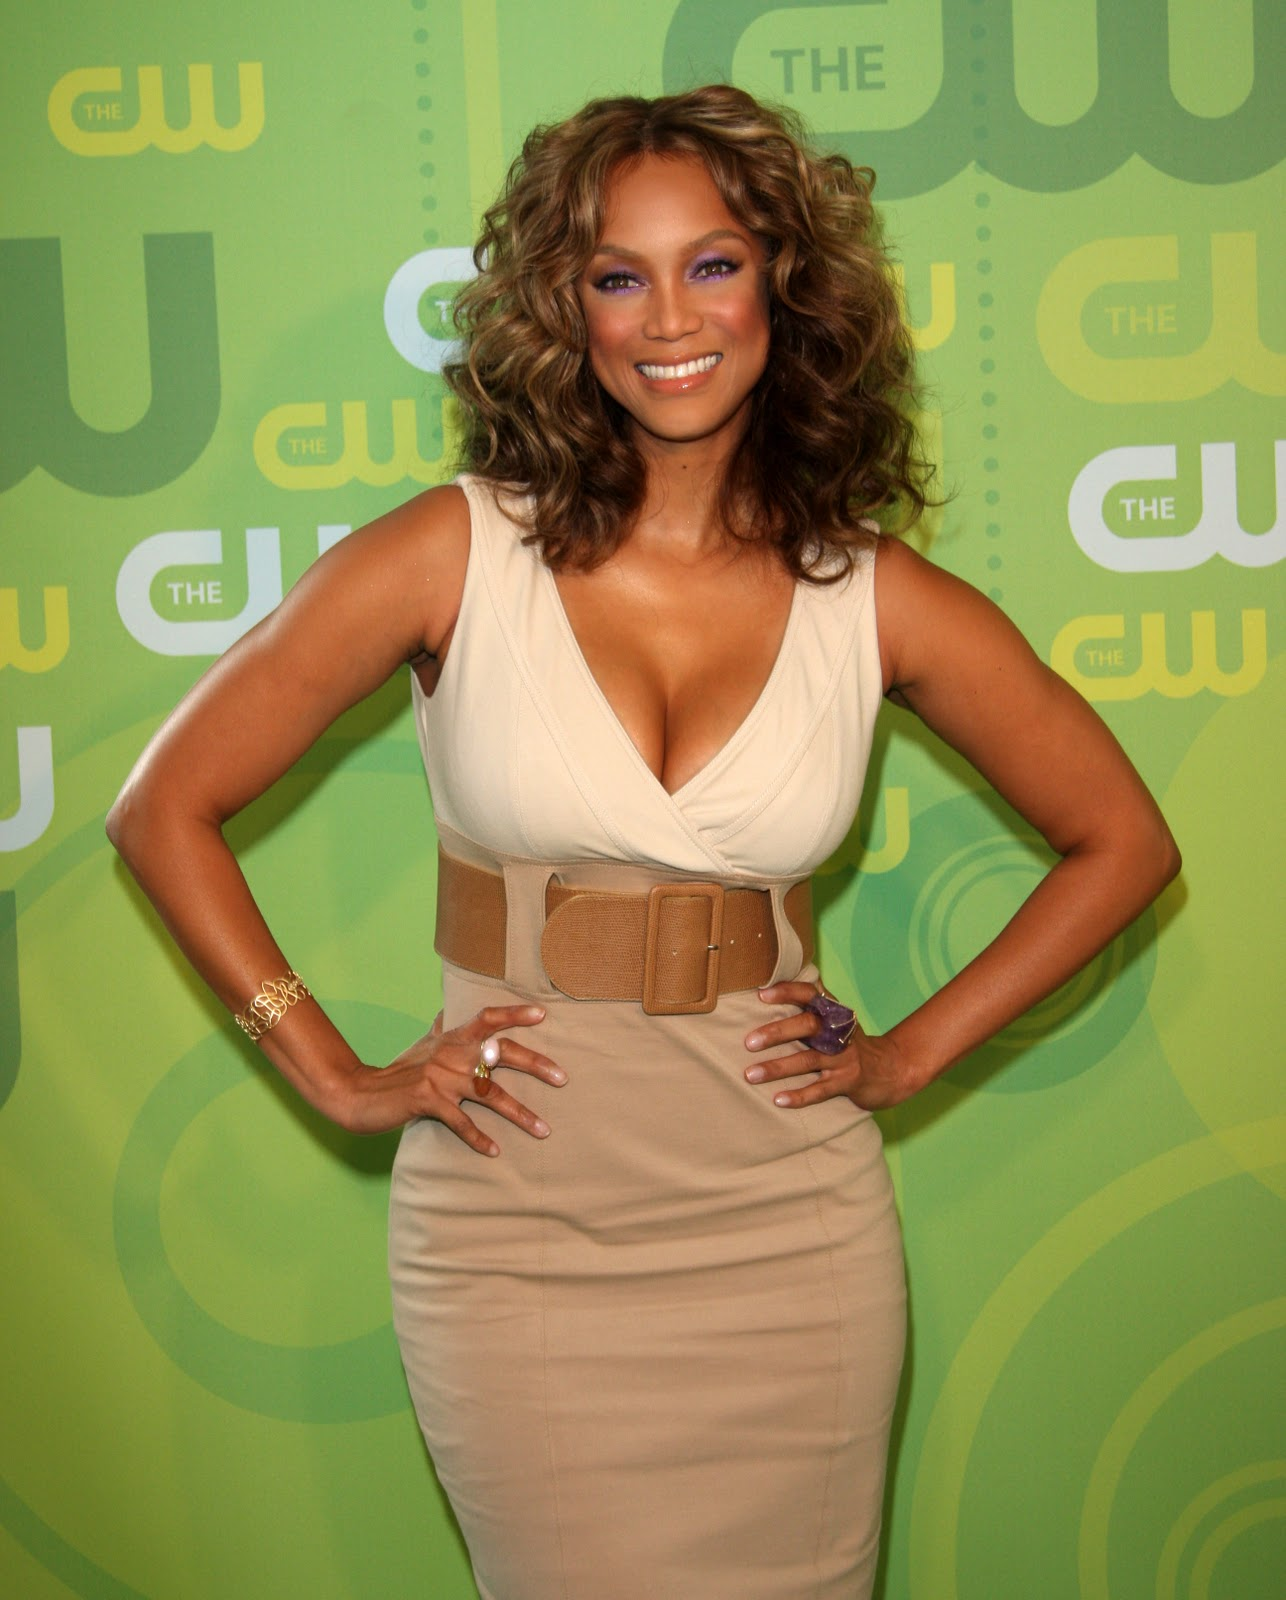 Supermodel Tyra banks: 'Global warming' will prevent women from having 'hourglass' bodies